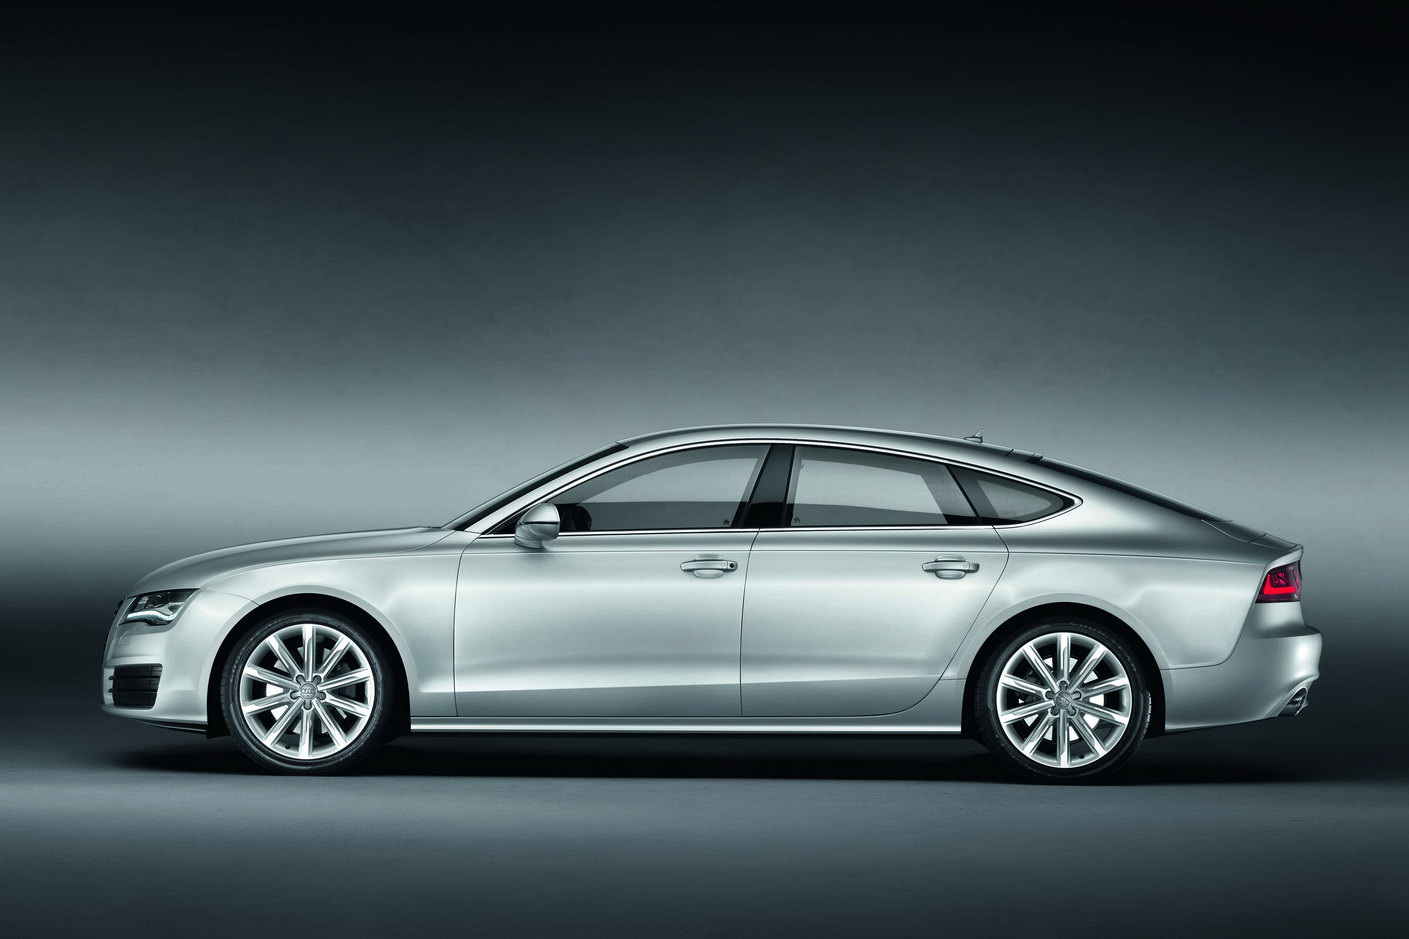 2011 audi a7 sportback official details and photos autoevolution. Black Bedroom Furniture Sets. Home Design Ideas